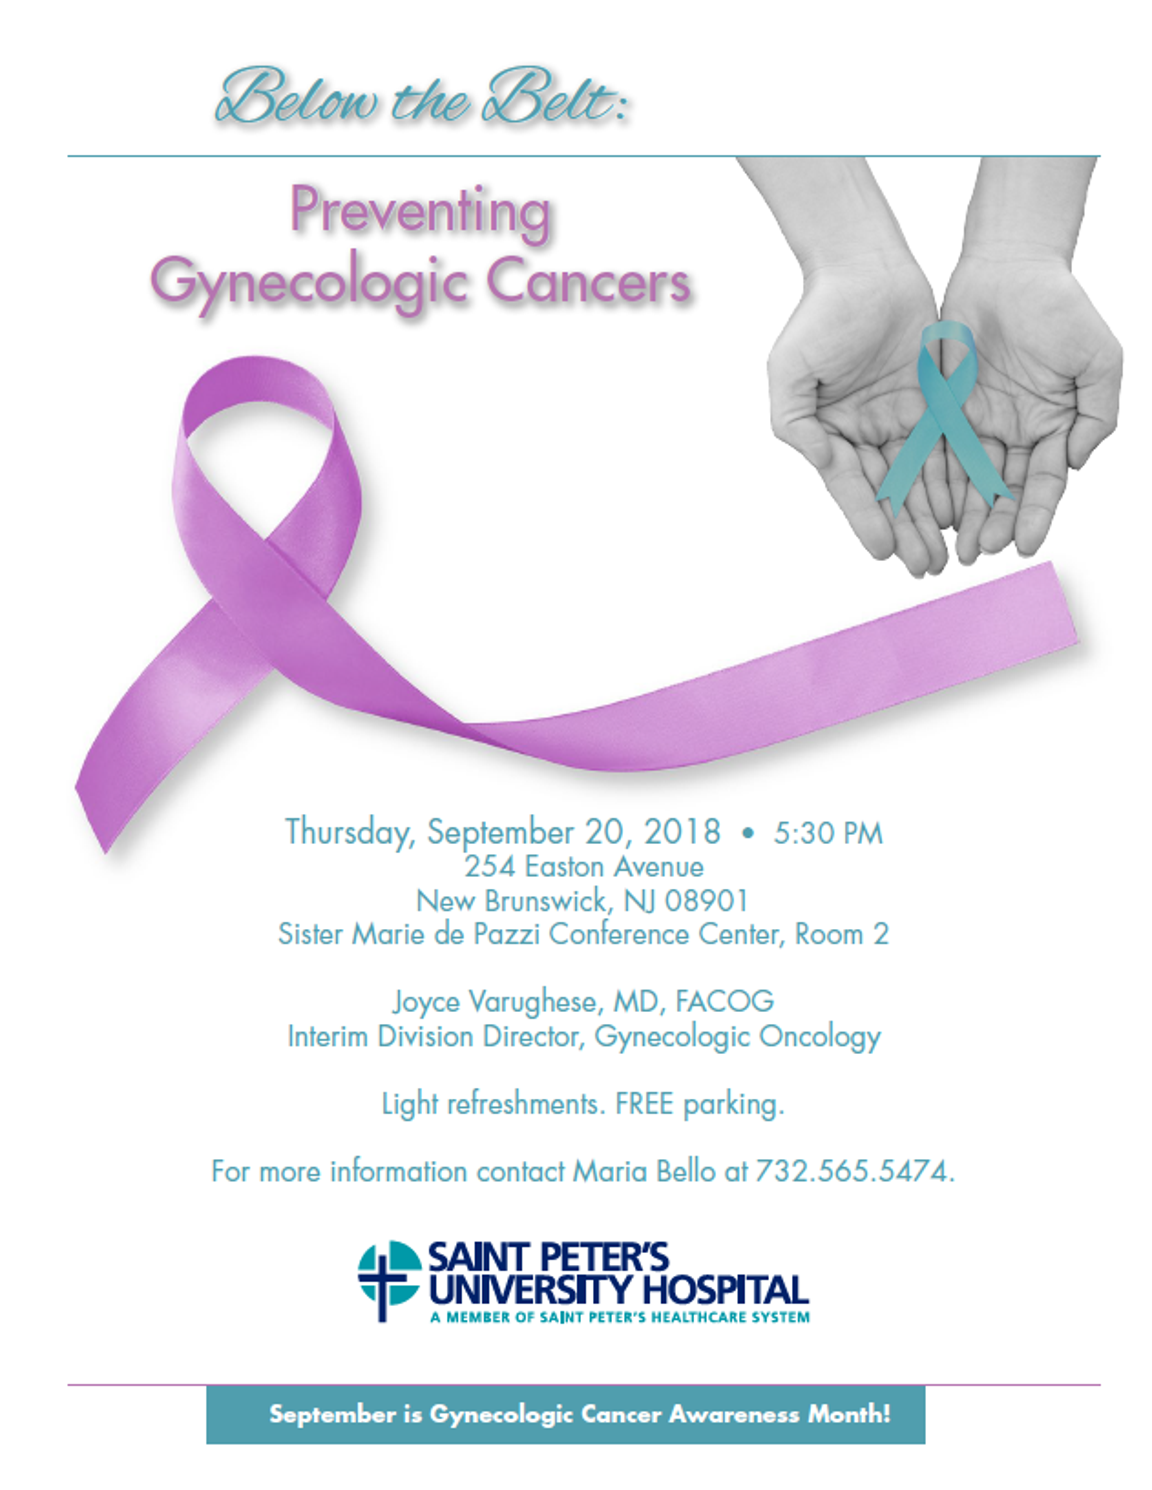 Preventing Gynecologic Cancers